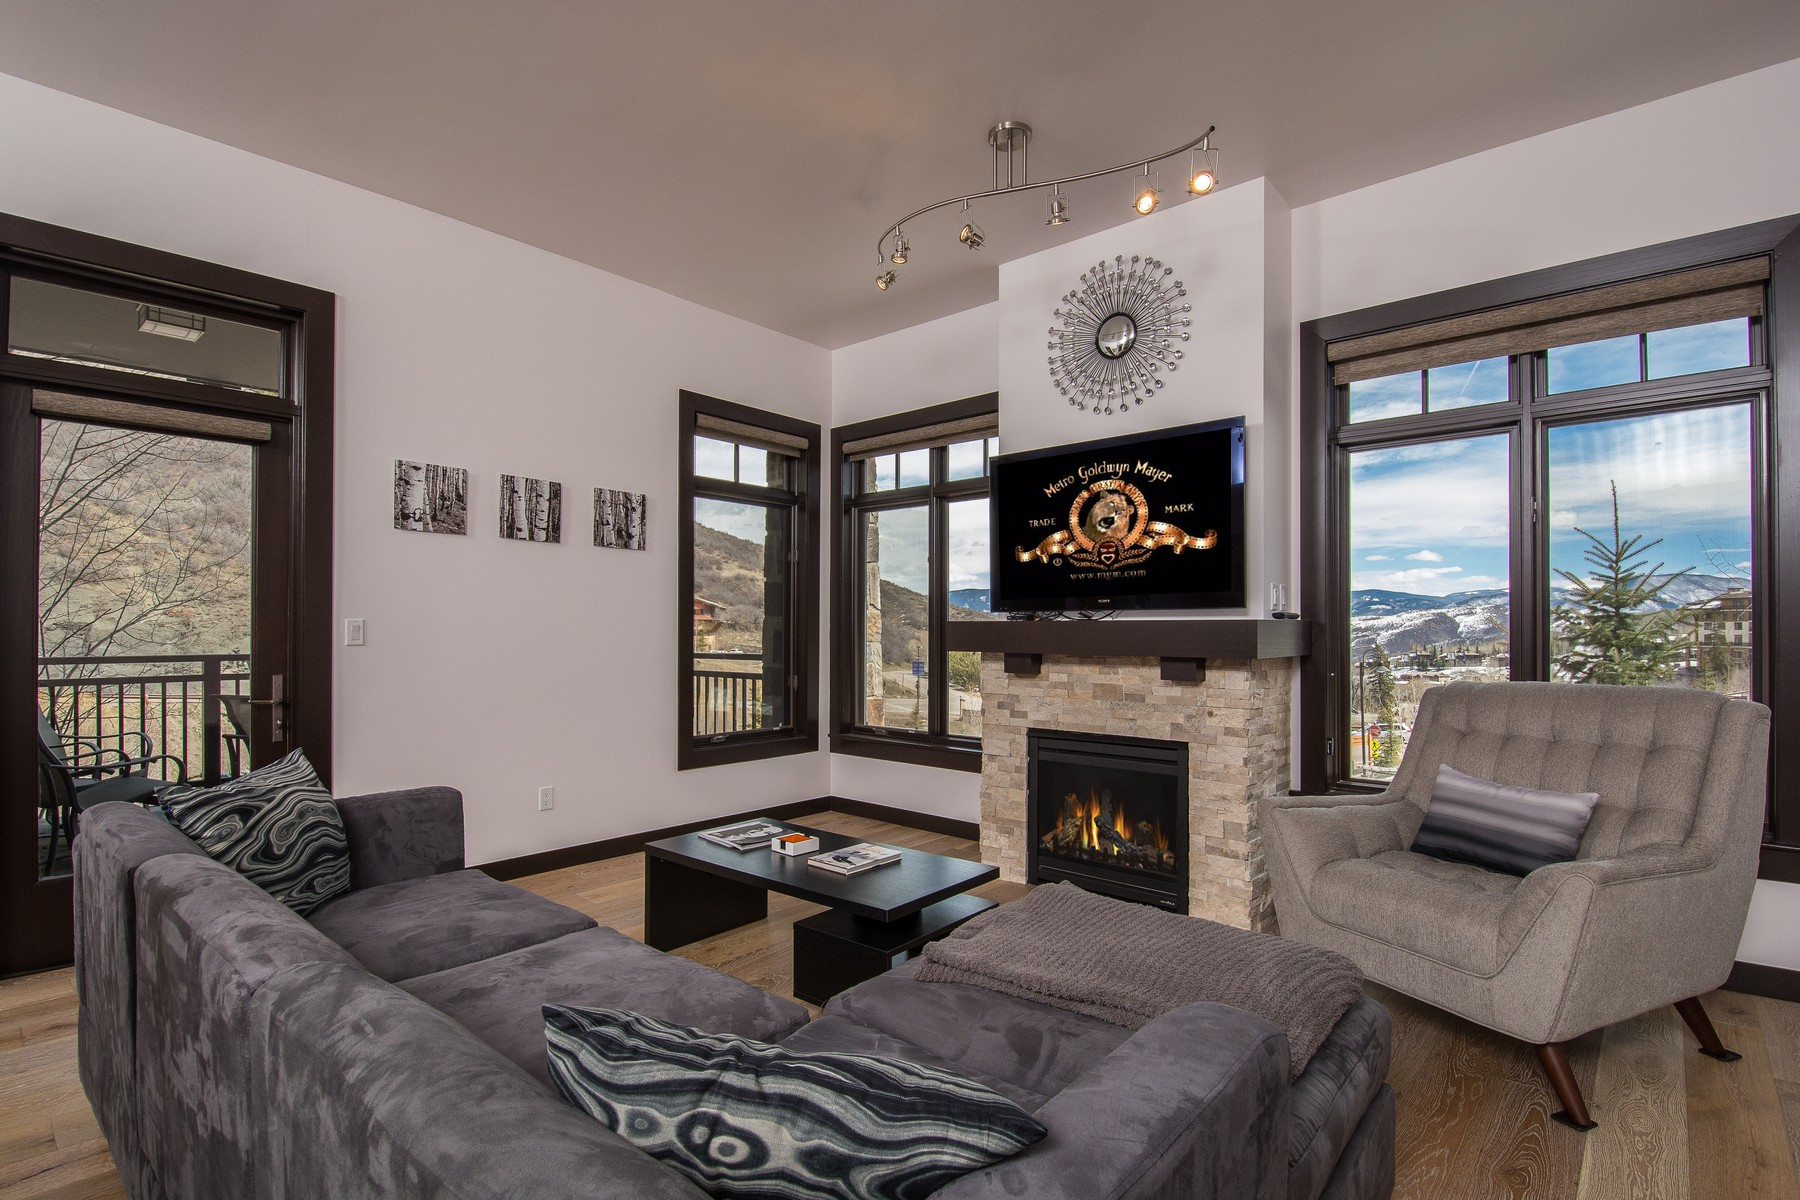 Copropriété pour l Vente à Capitol Peak Unit 3032 60 Carriage Way Unit 3032 Snowmass Village, Colorado, 81615 États-Unis